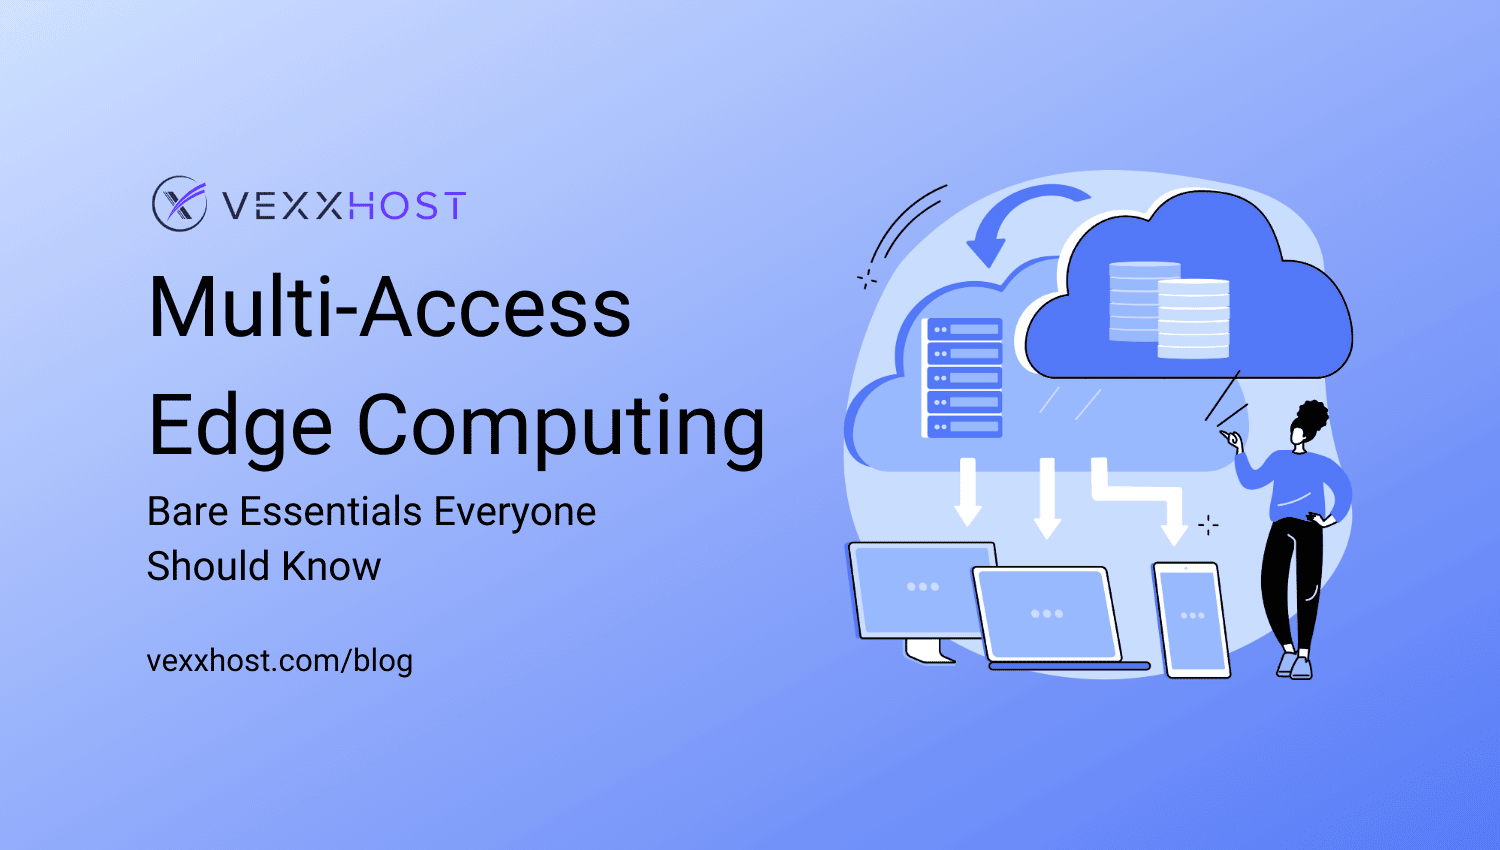 Multi-Access Edge Computing - Bare Essentials Everyone Should Know